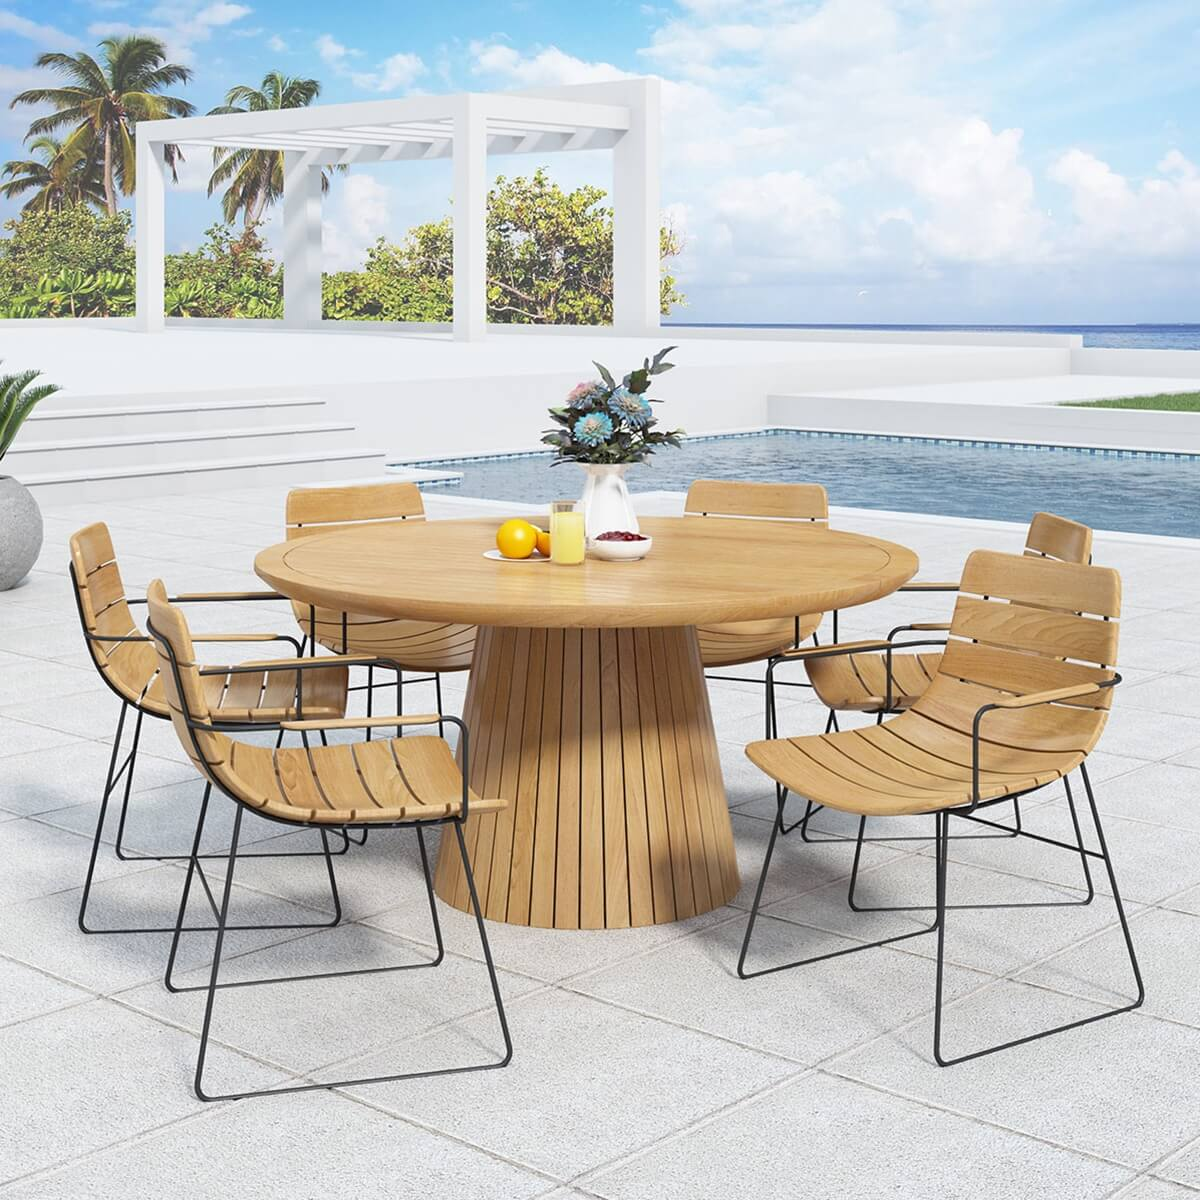 Zenad Teak Wood Outdoor Round Dining Table and Chair Set